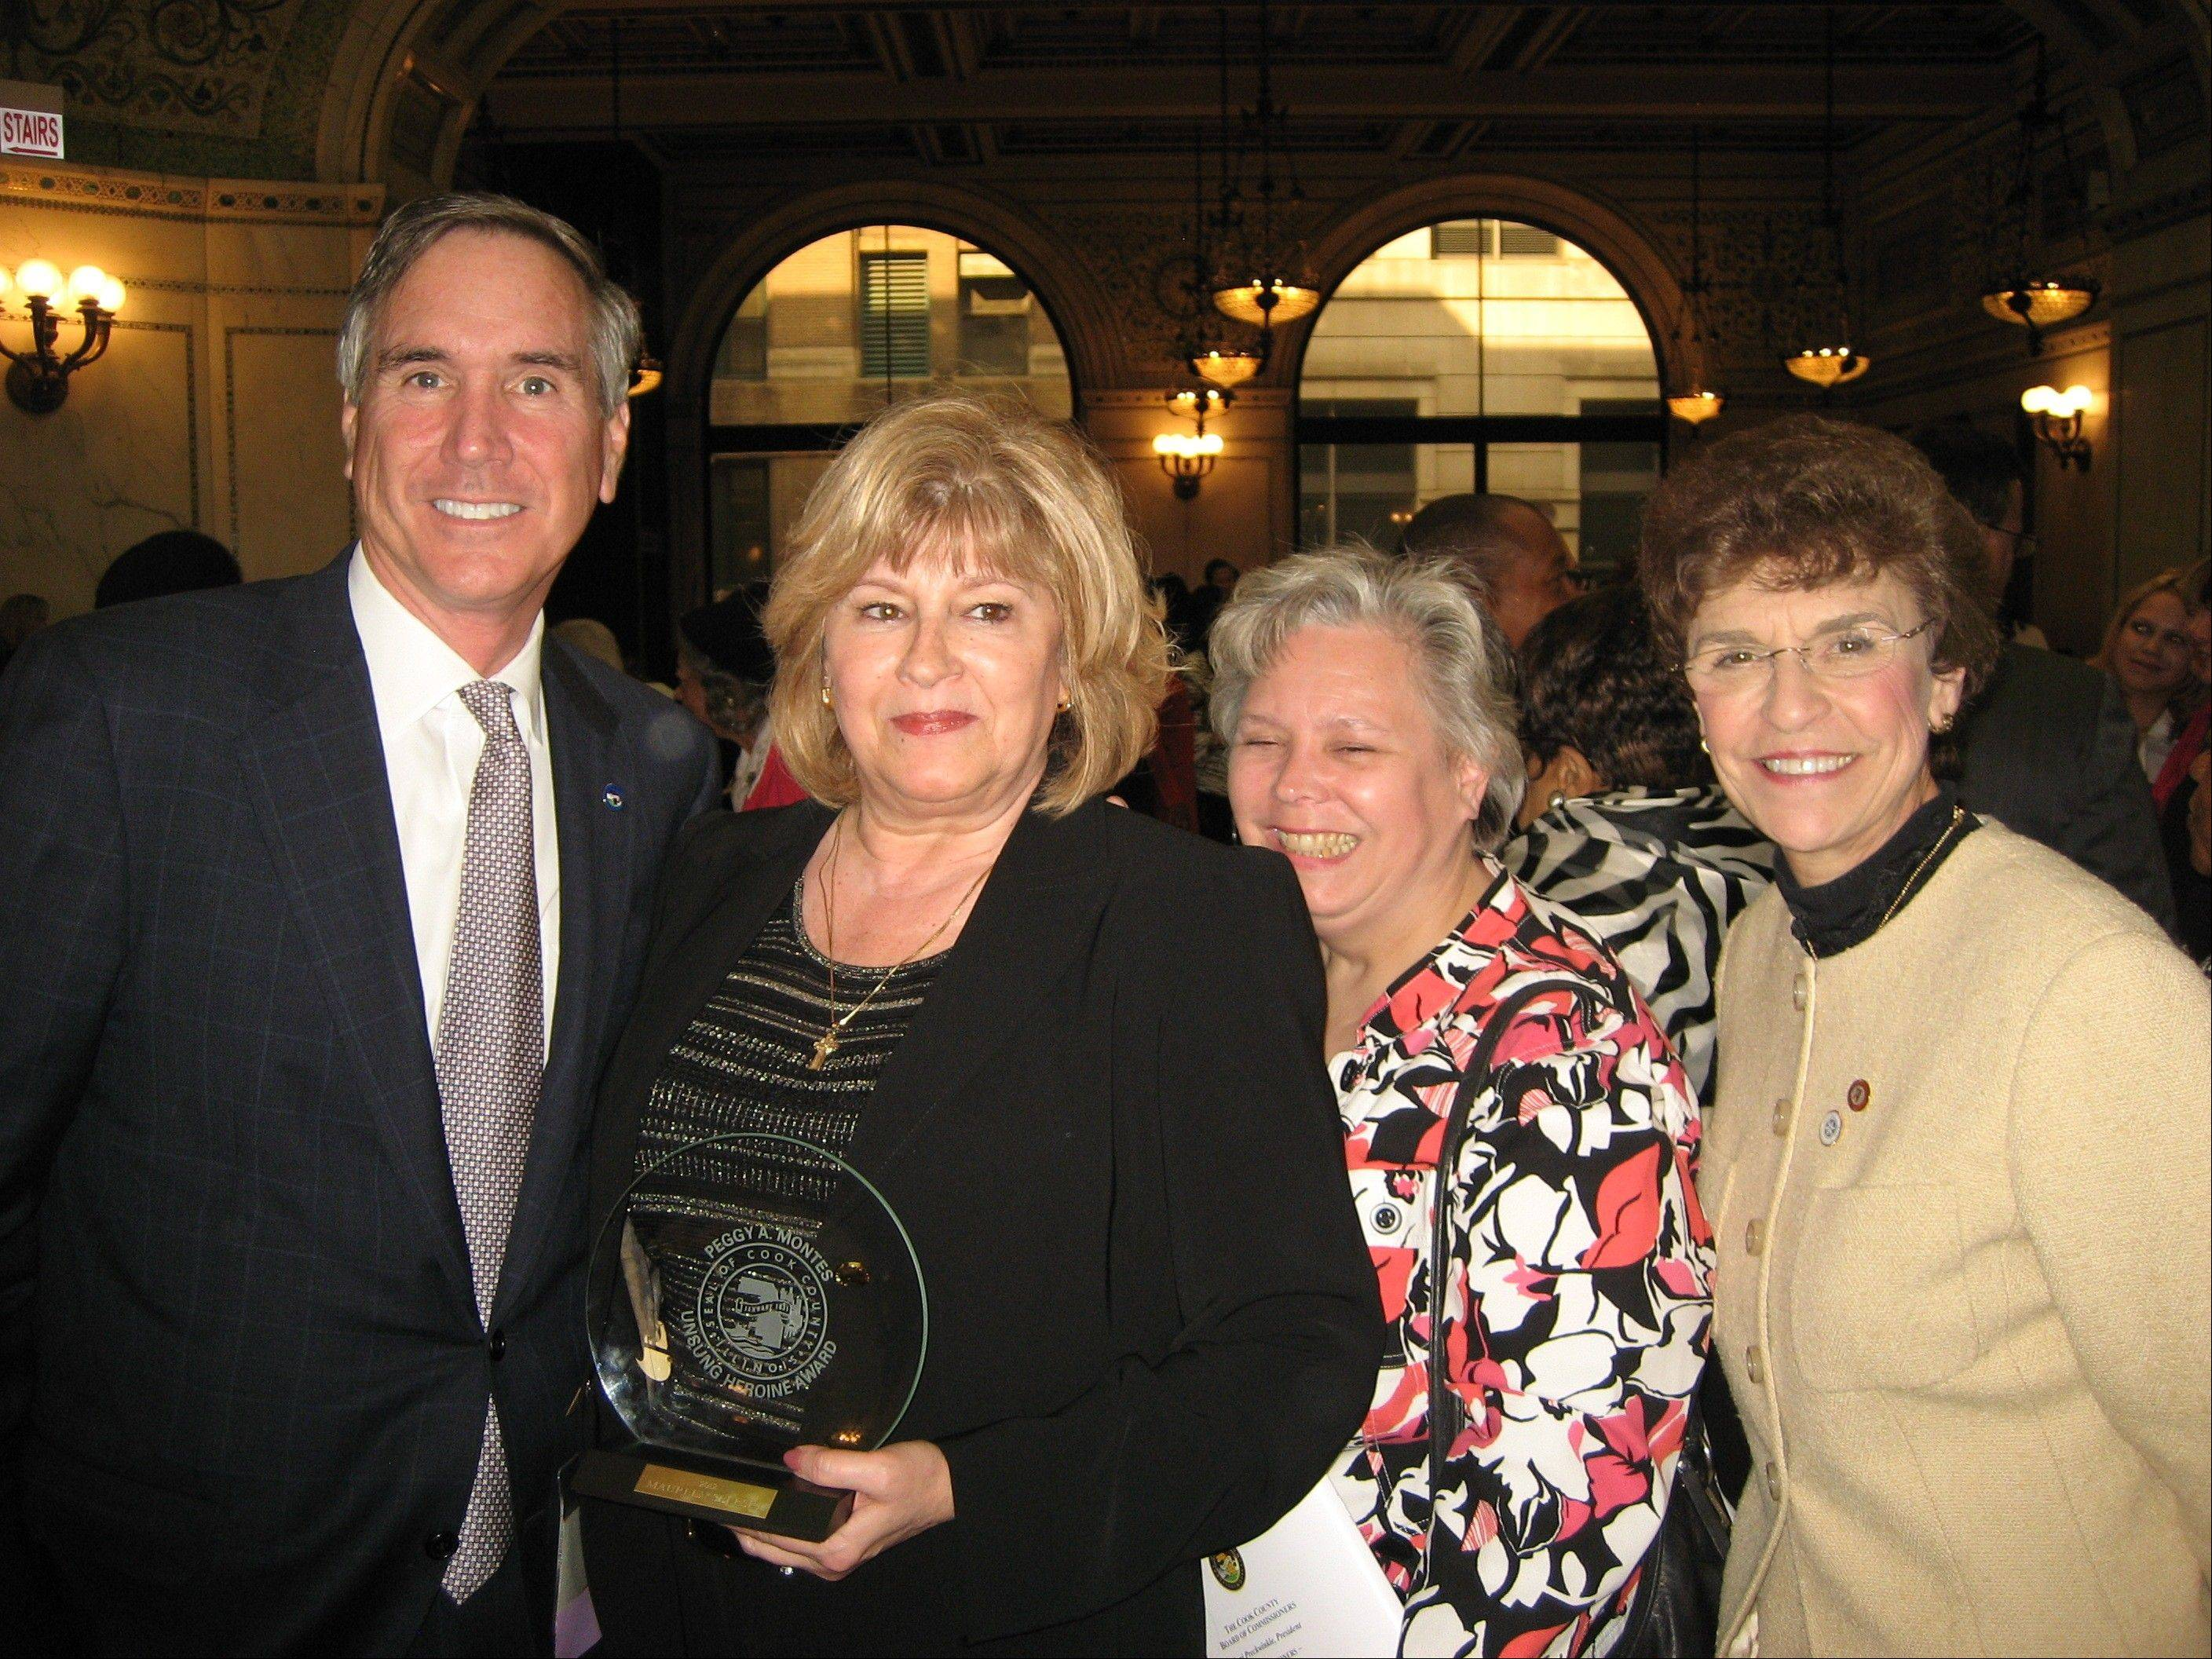 Cook County Commissioner Tim Schneider celebrates with award winner Maureen Seleski; Karen Hansen, manager of the Arlington Heights Senior Center; and Arlington Heights Village President Arlene Mulder.